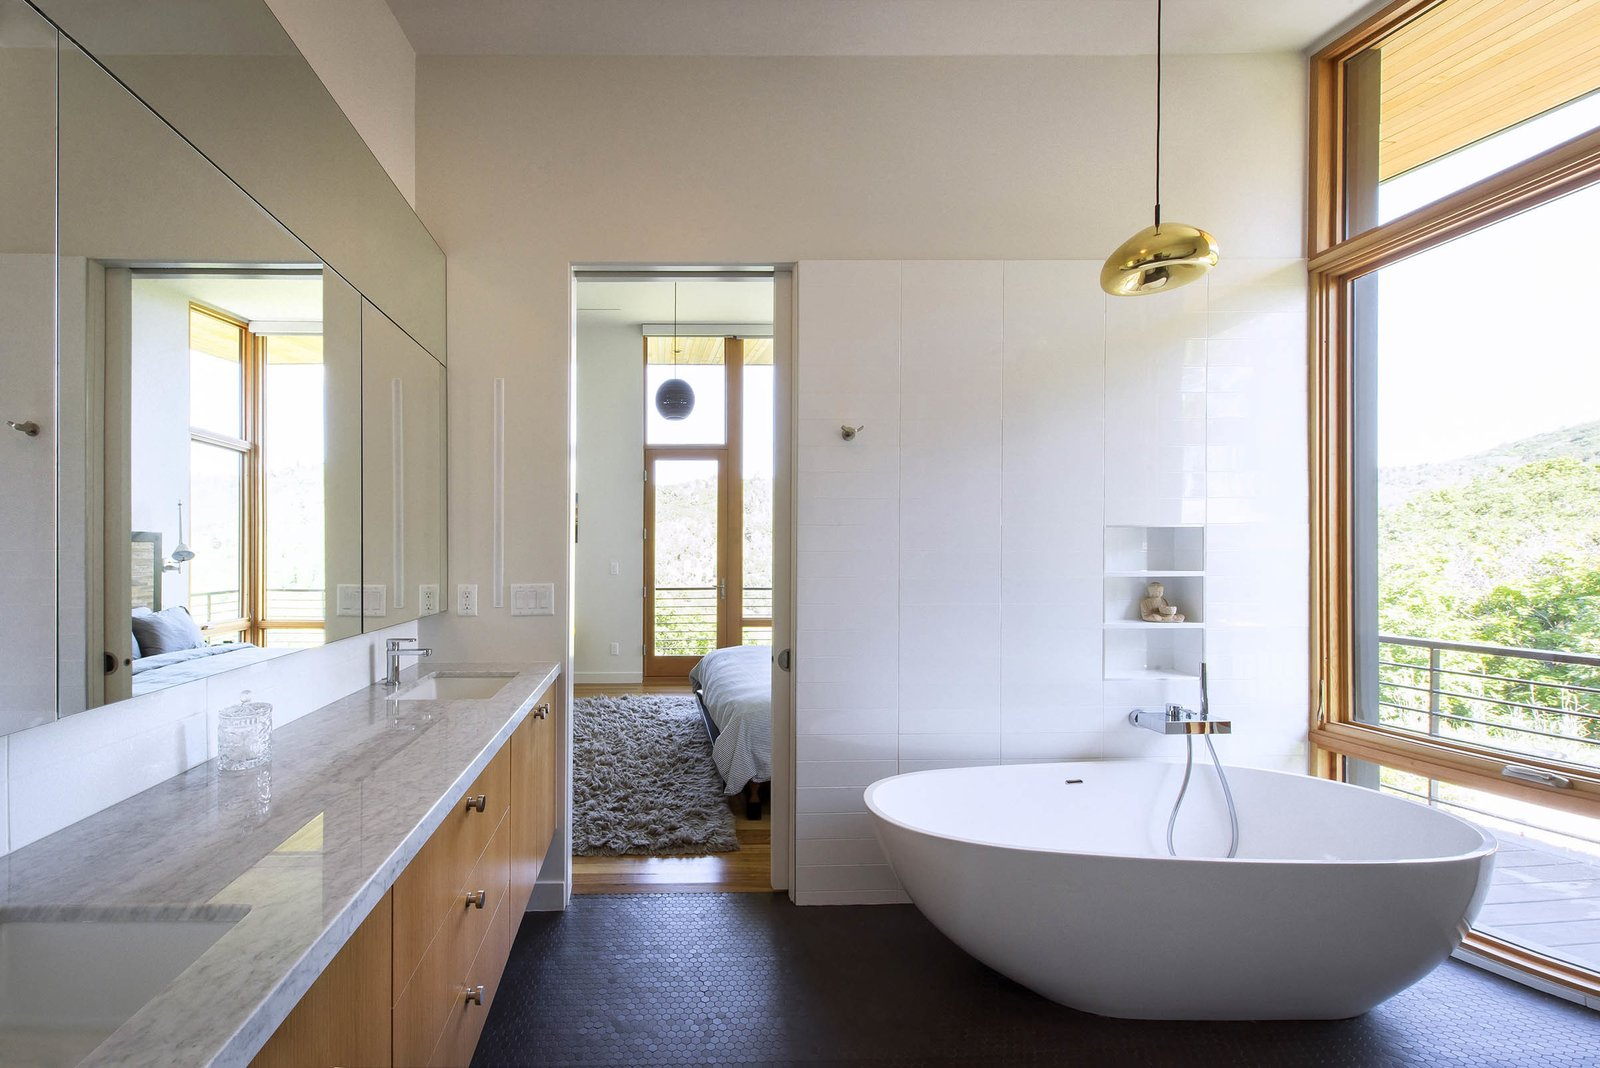 Bath, Marble, Ceramic Tile, Undermount, Freestanding, Open, Pendant, Ceramic Tile, and Subway Tile The master bathroom is flooded with light and views while maintaining privacy screened by the scrub oak preserved on lot.  Bath Ceramic Tile Subway Tile Marble Photos from Red Hawk